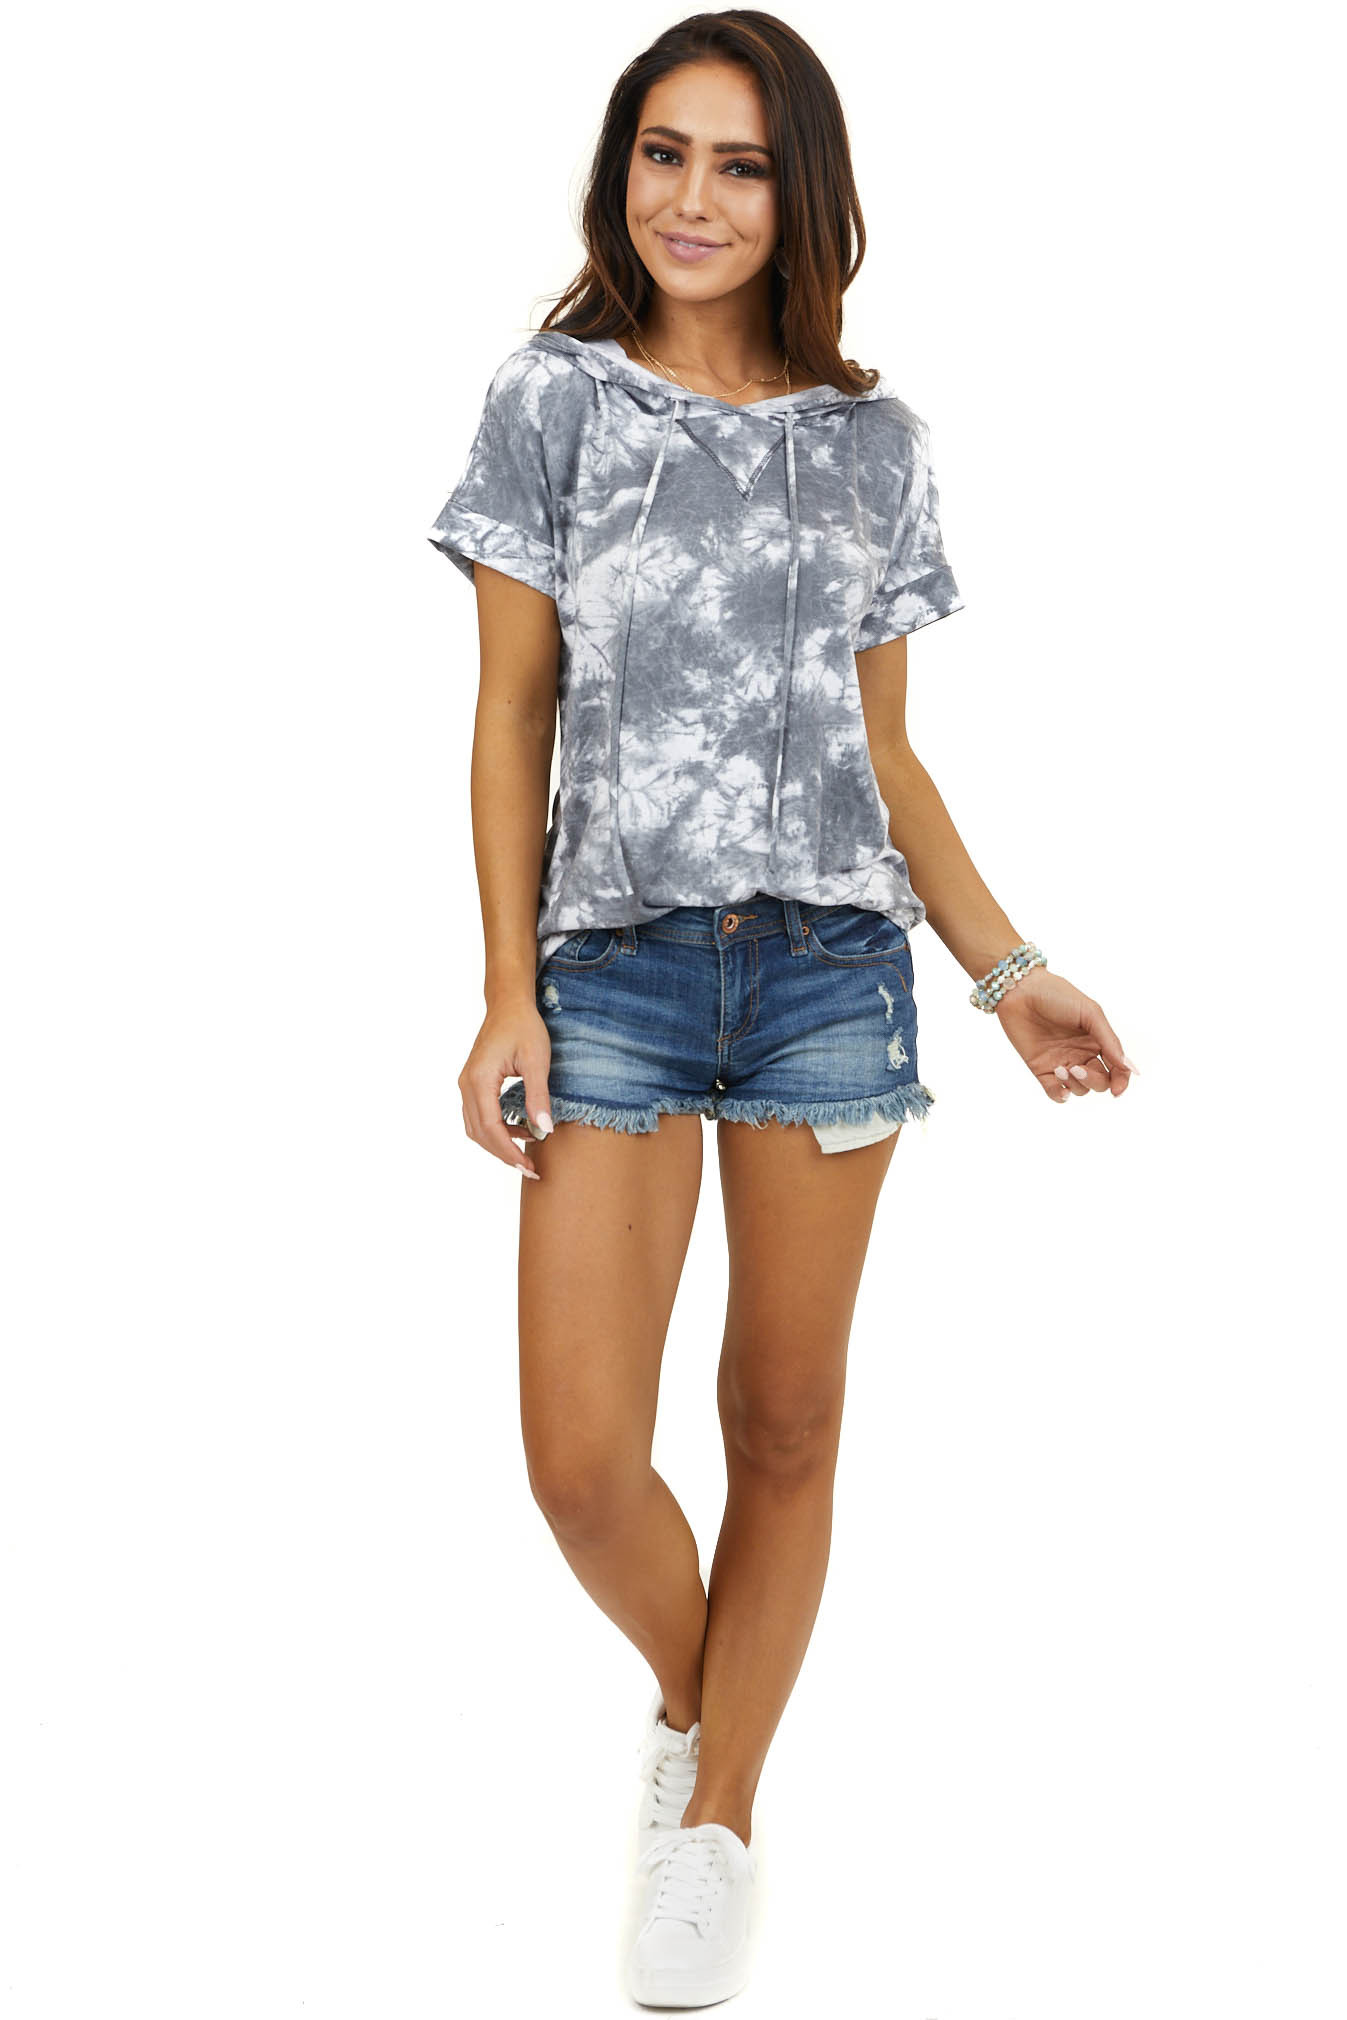 Charcoal and Ivory Tie Dye Short Sleeve Tee Shirt Hoodie